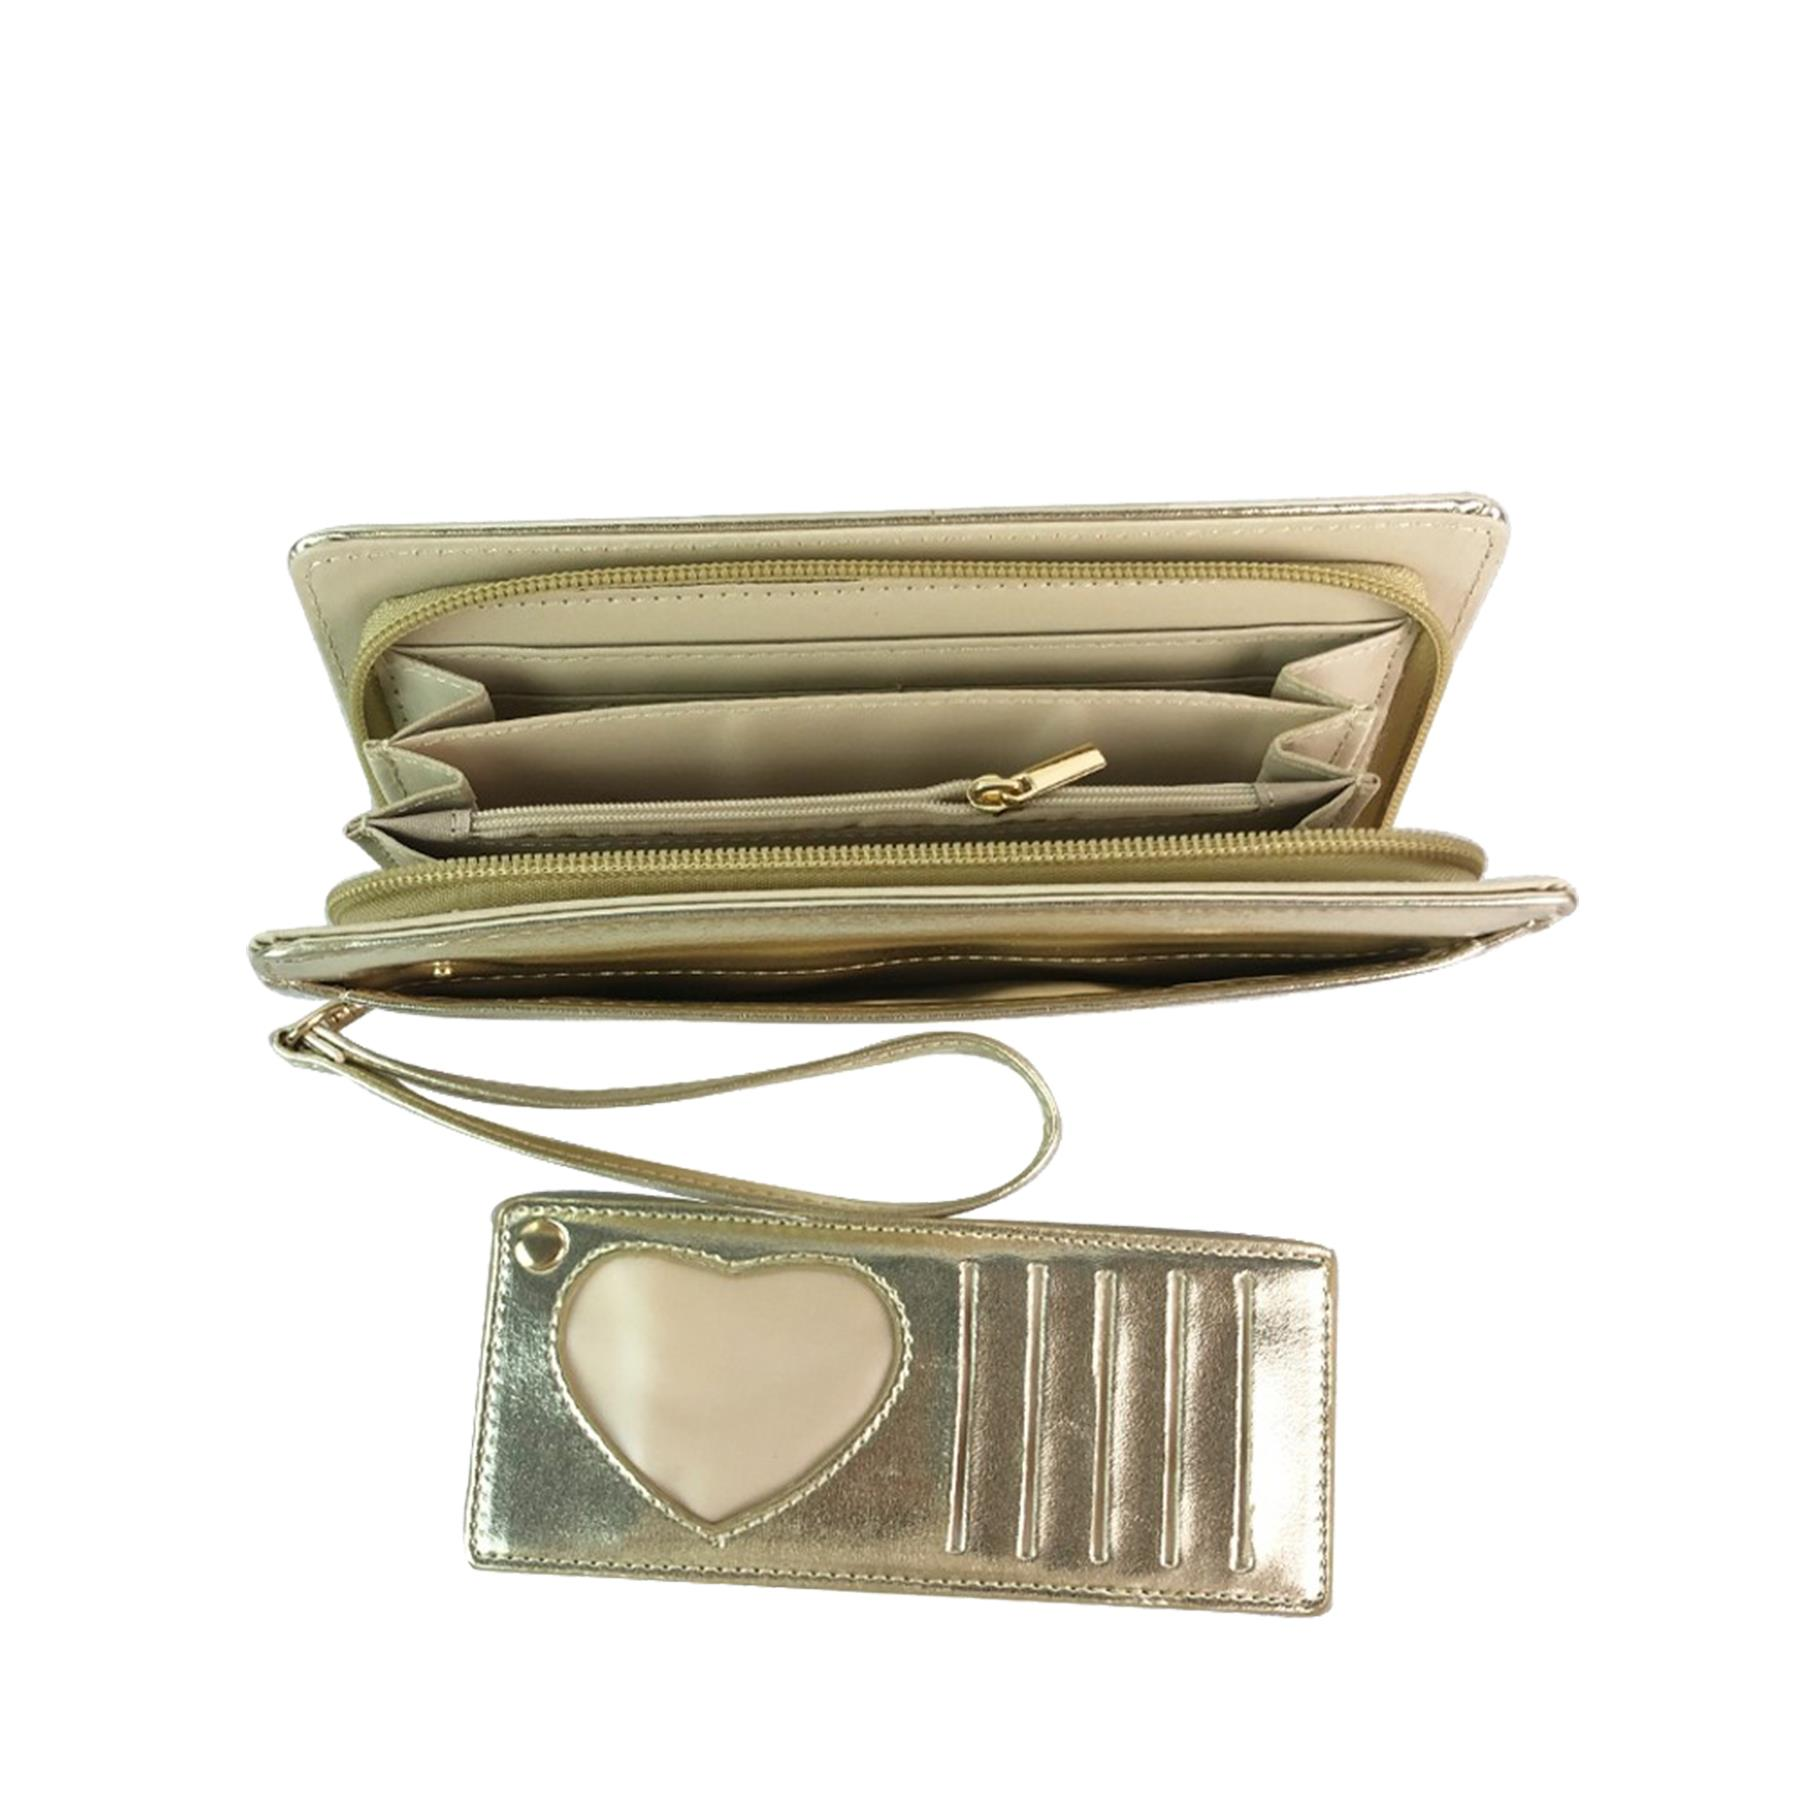 New-Ladies-Faux-Leather-Money-Organiser-Large-Wristlet-Purse-Wallet thumbnail 36